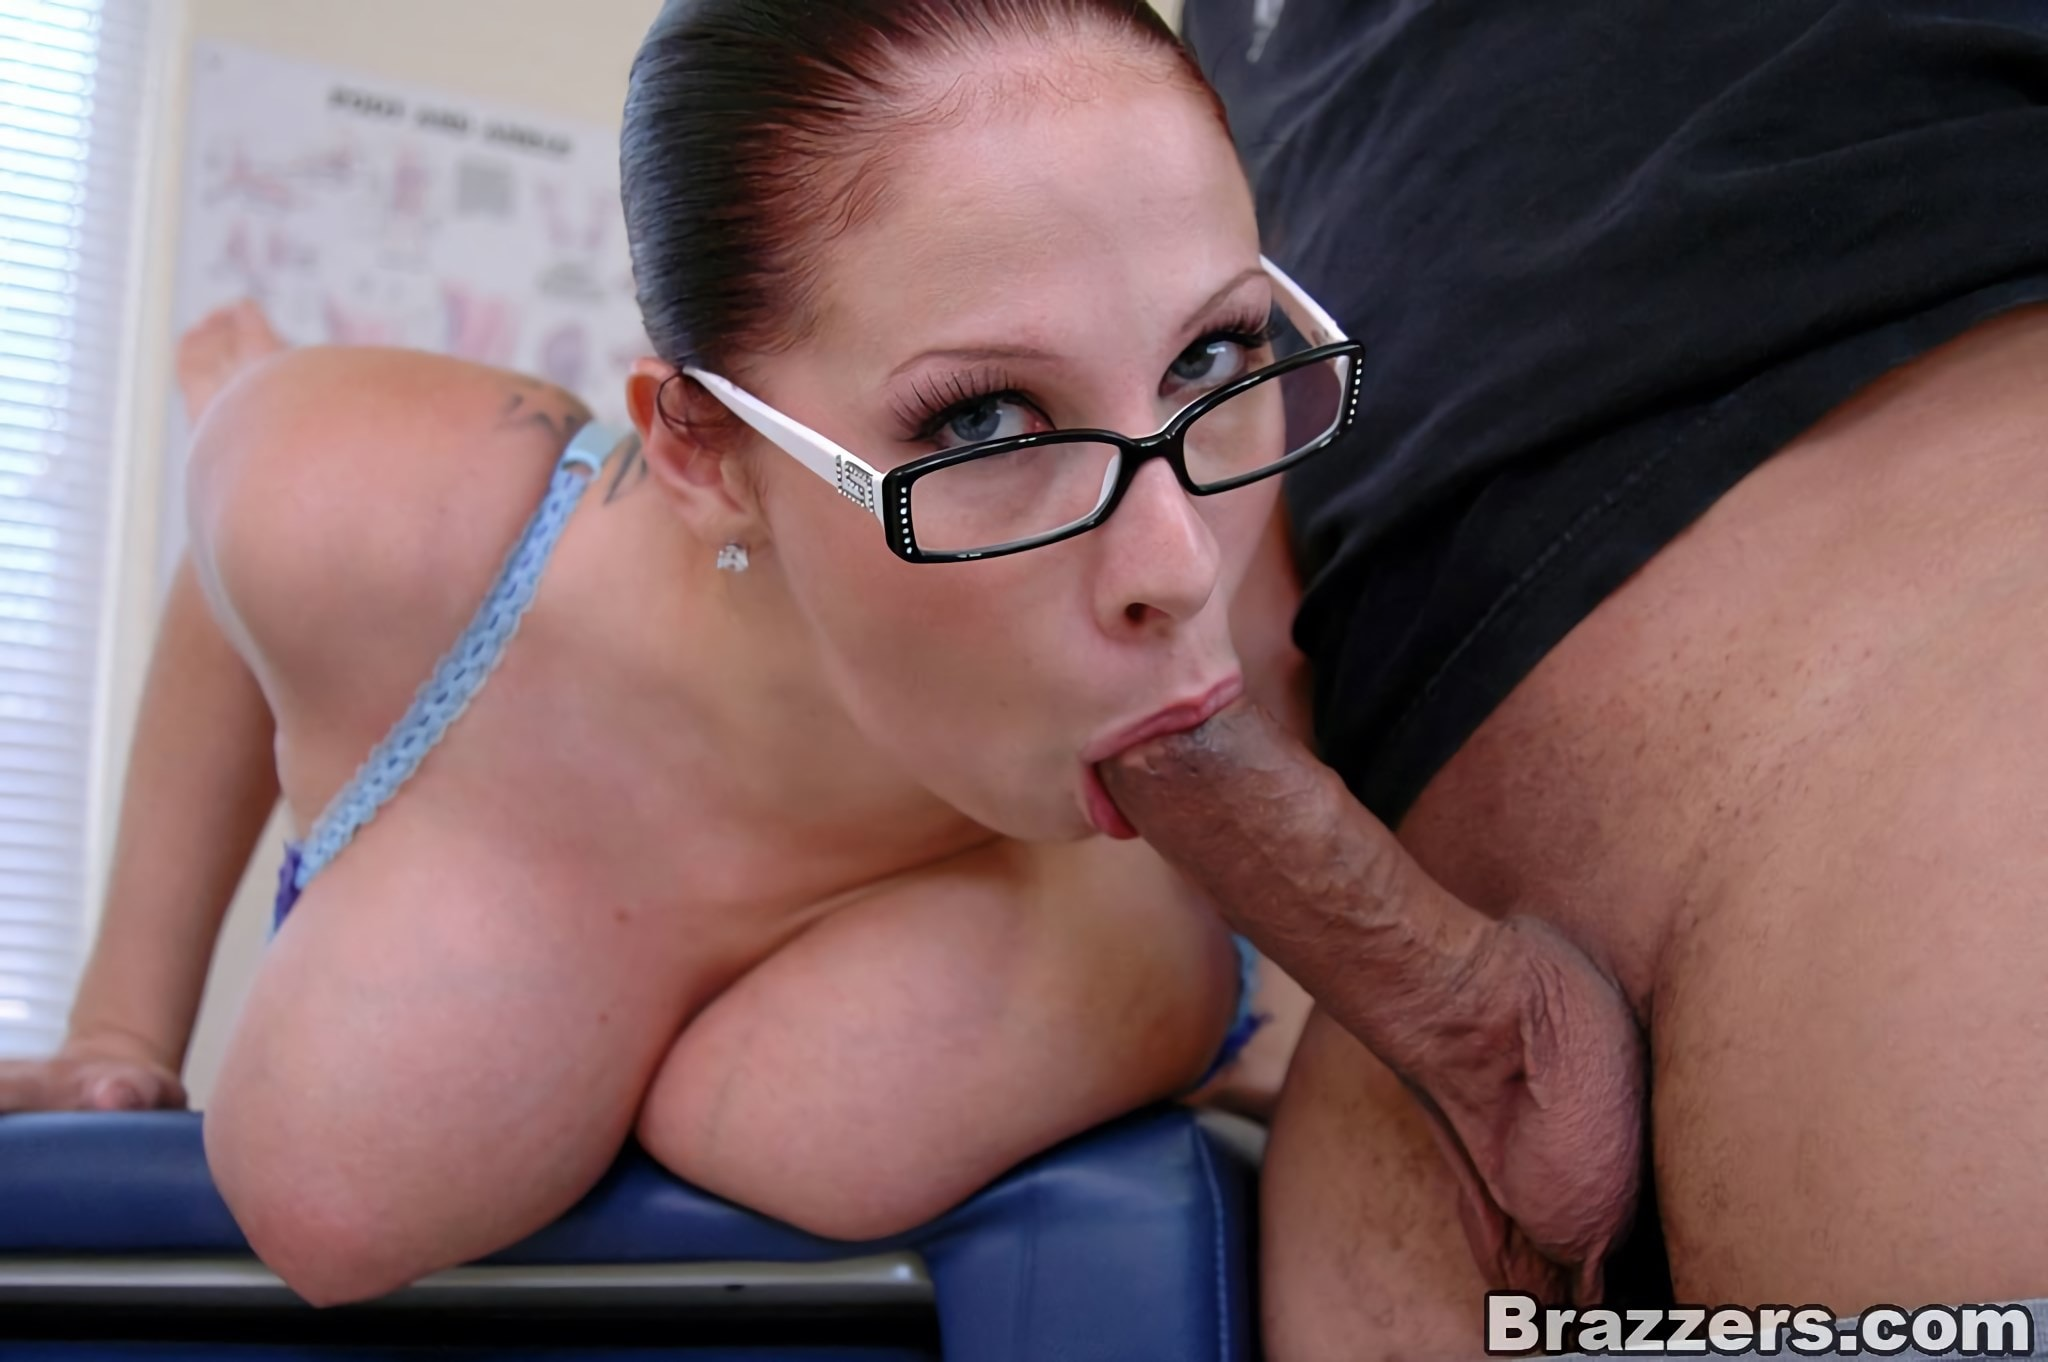 Brazzers 'Major Cleavage' starring Gianna Michaels (Photo 5)